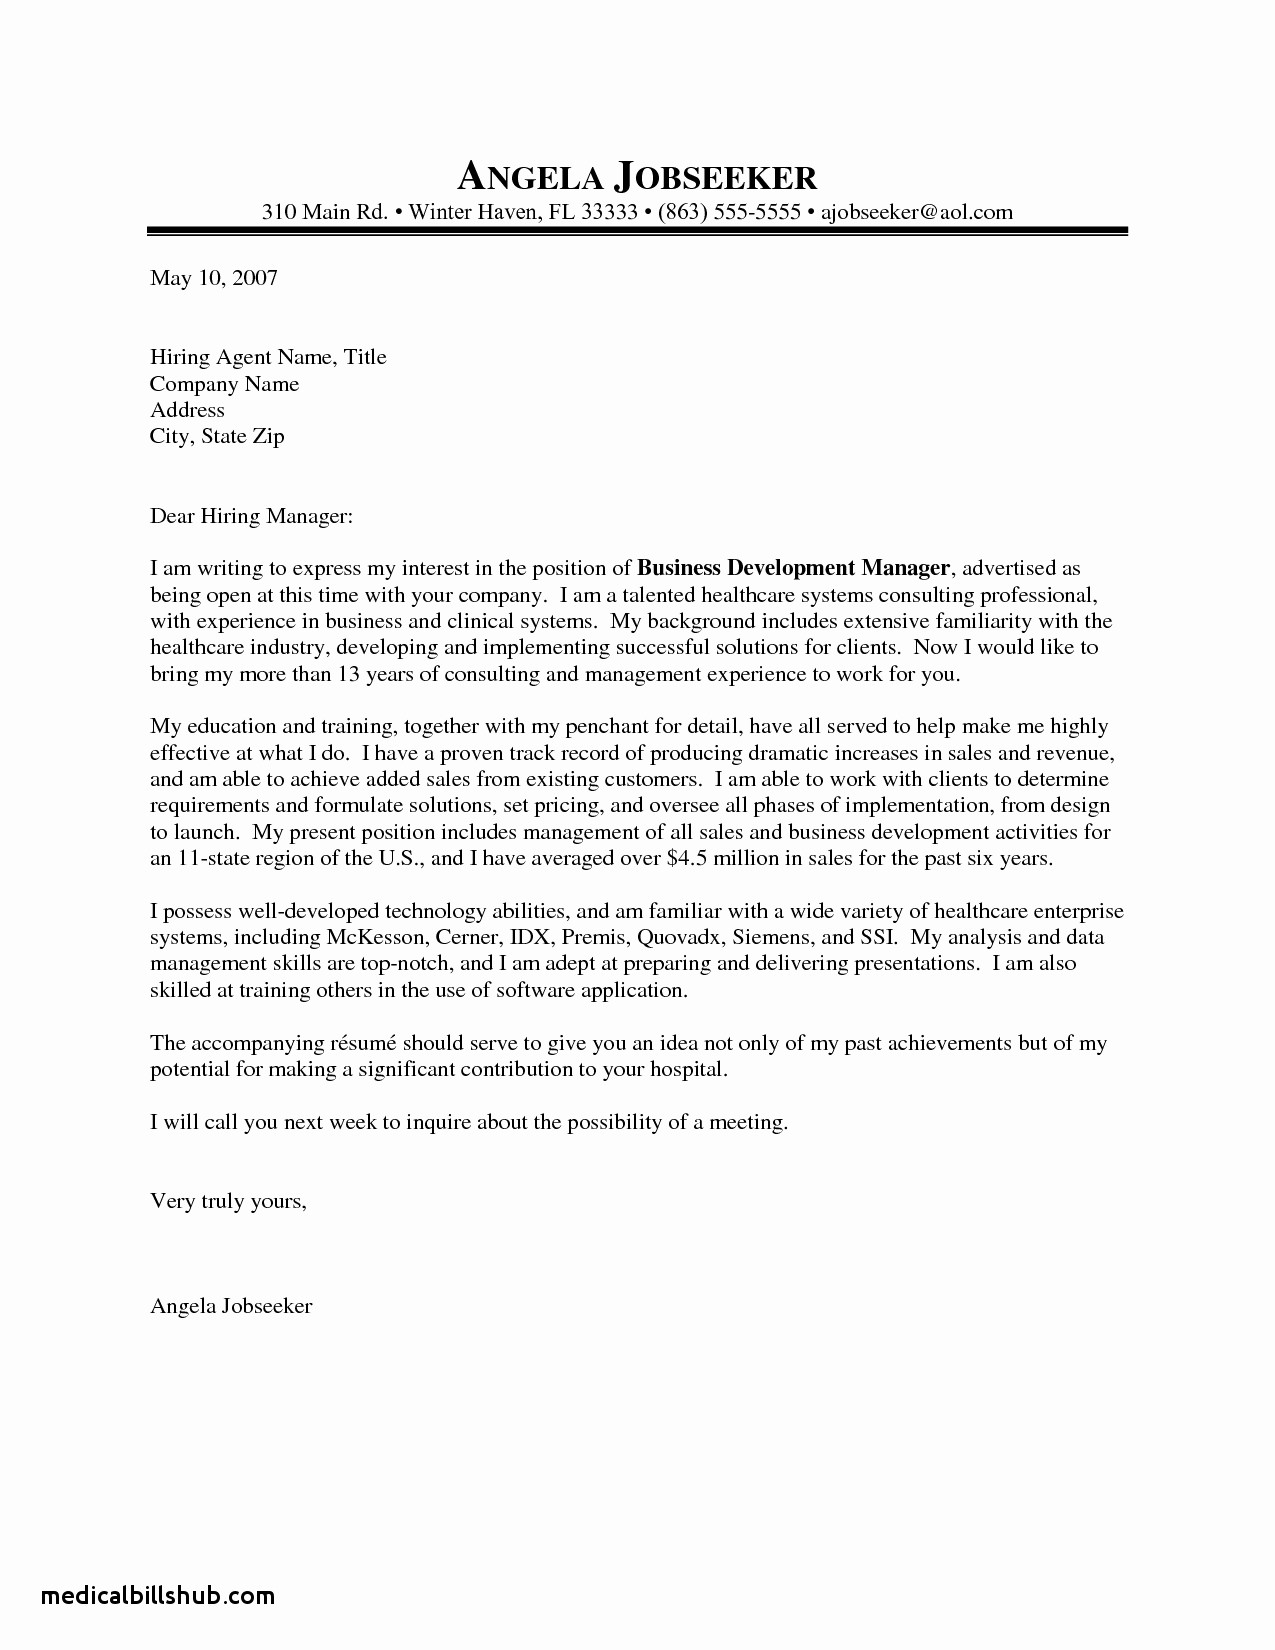 Health Care Letter Of Recommendation Inspirational Reference Letter for Home Health Aide